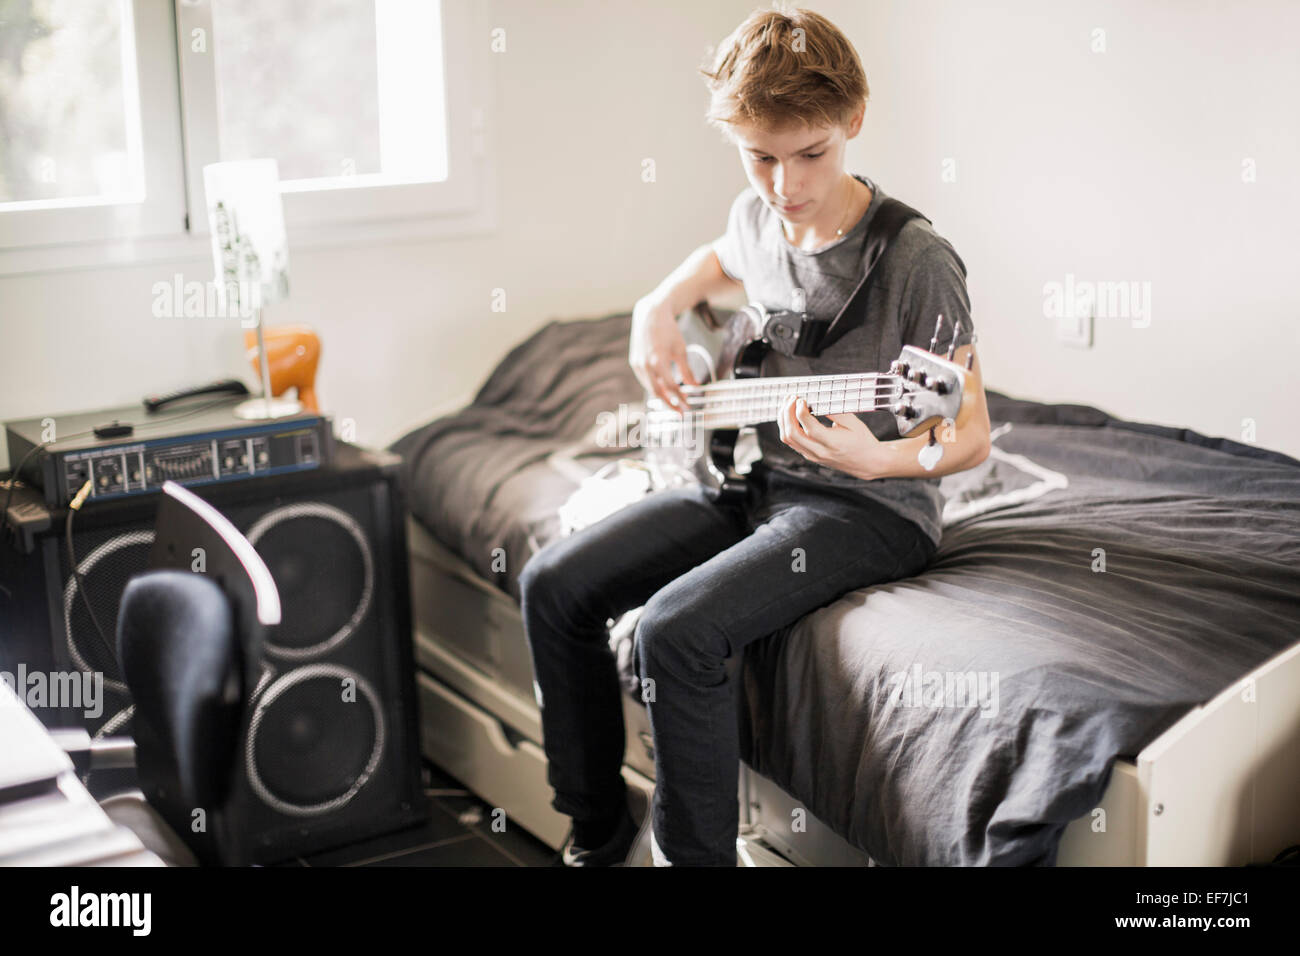 Teenage boy playing a guitar on bed - Stock Image